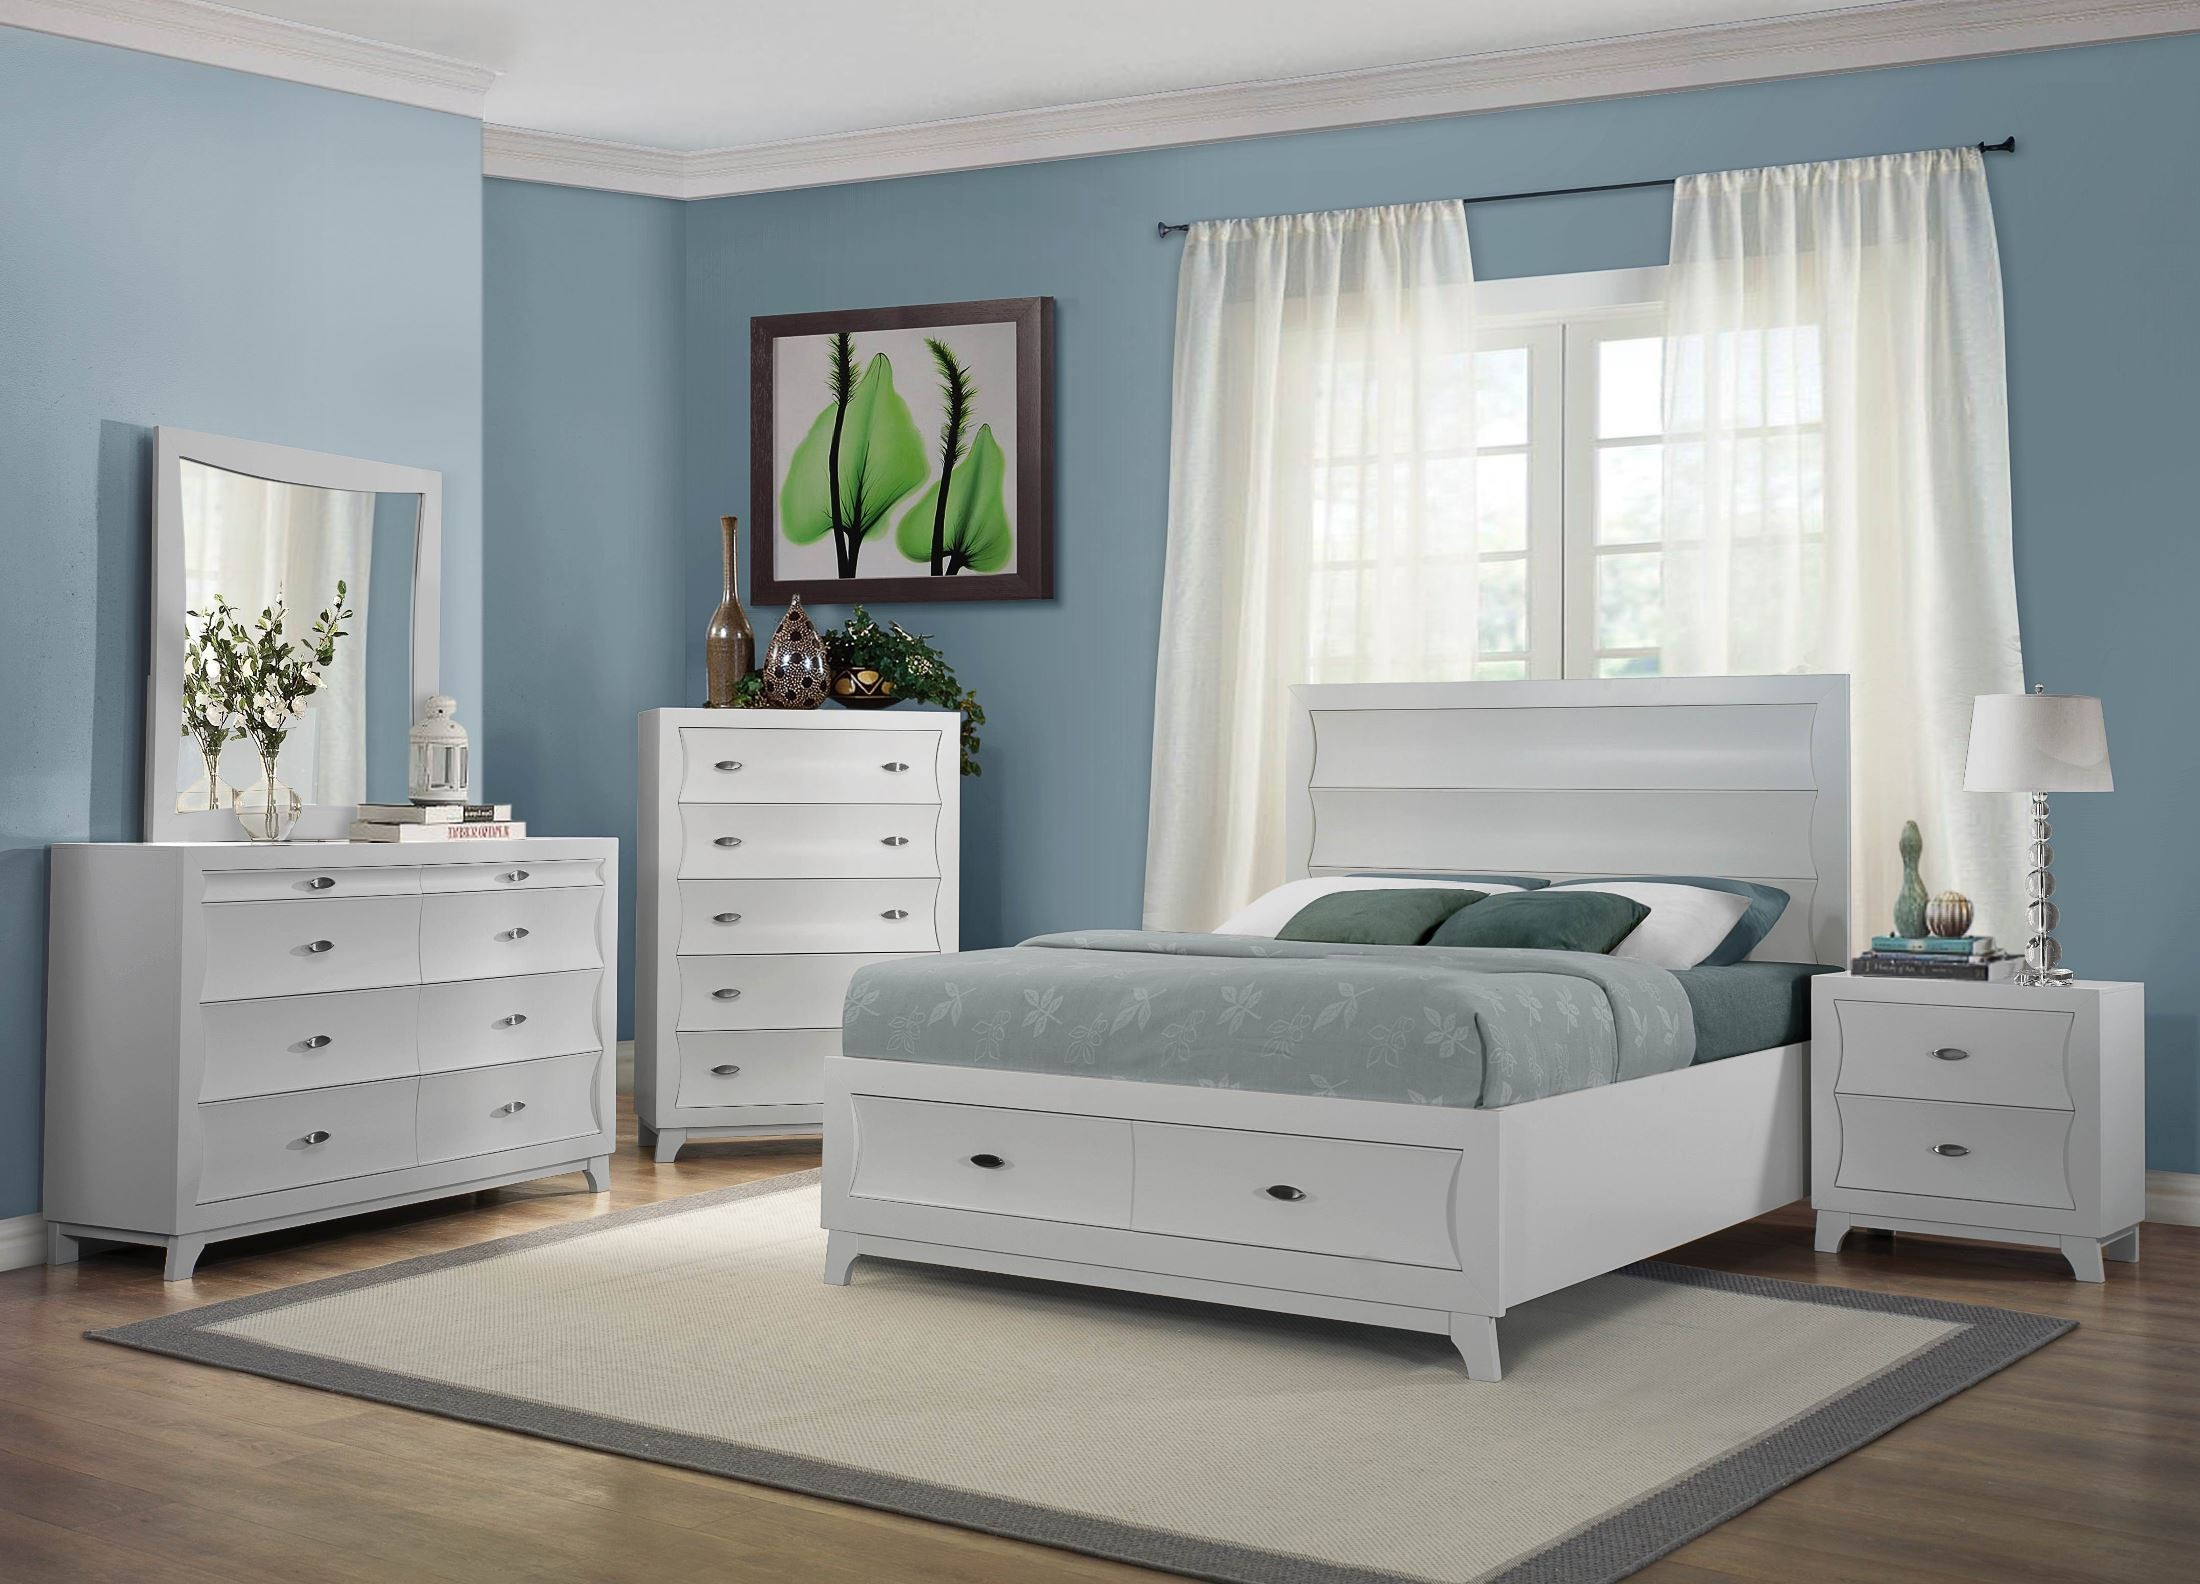 Zandra white platform storage bedroom set from homelegance for White bedroom furniture